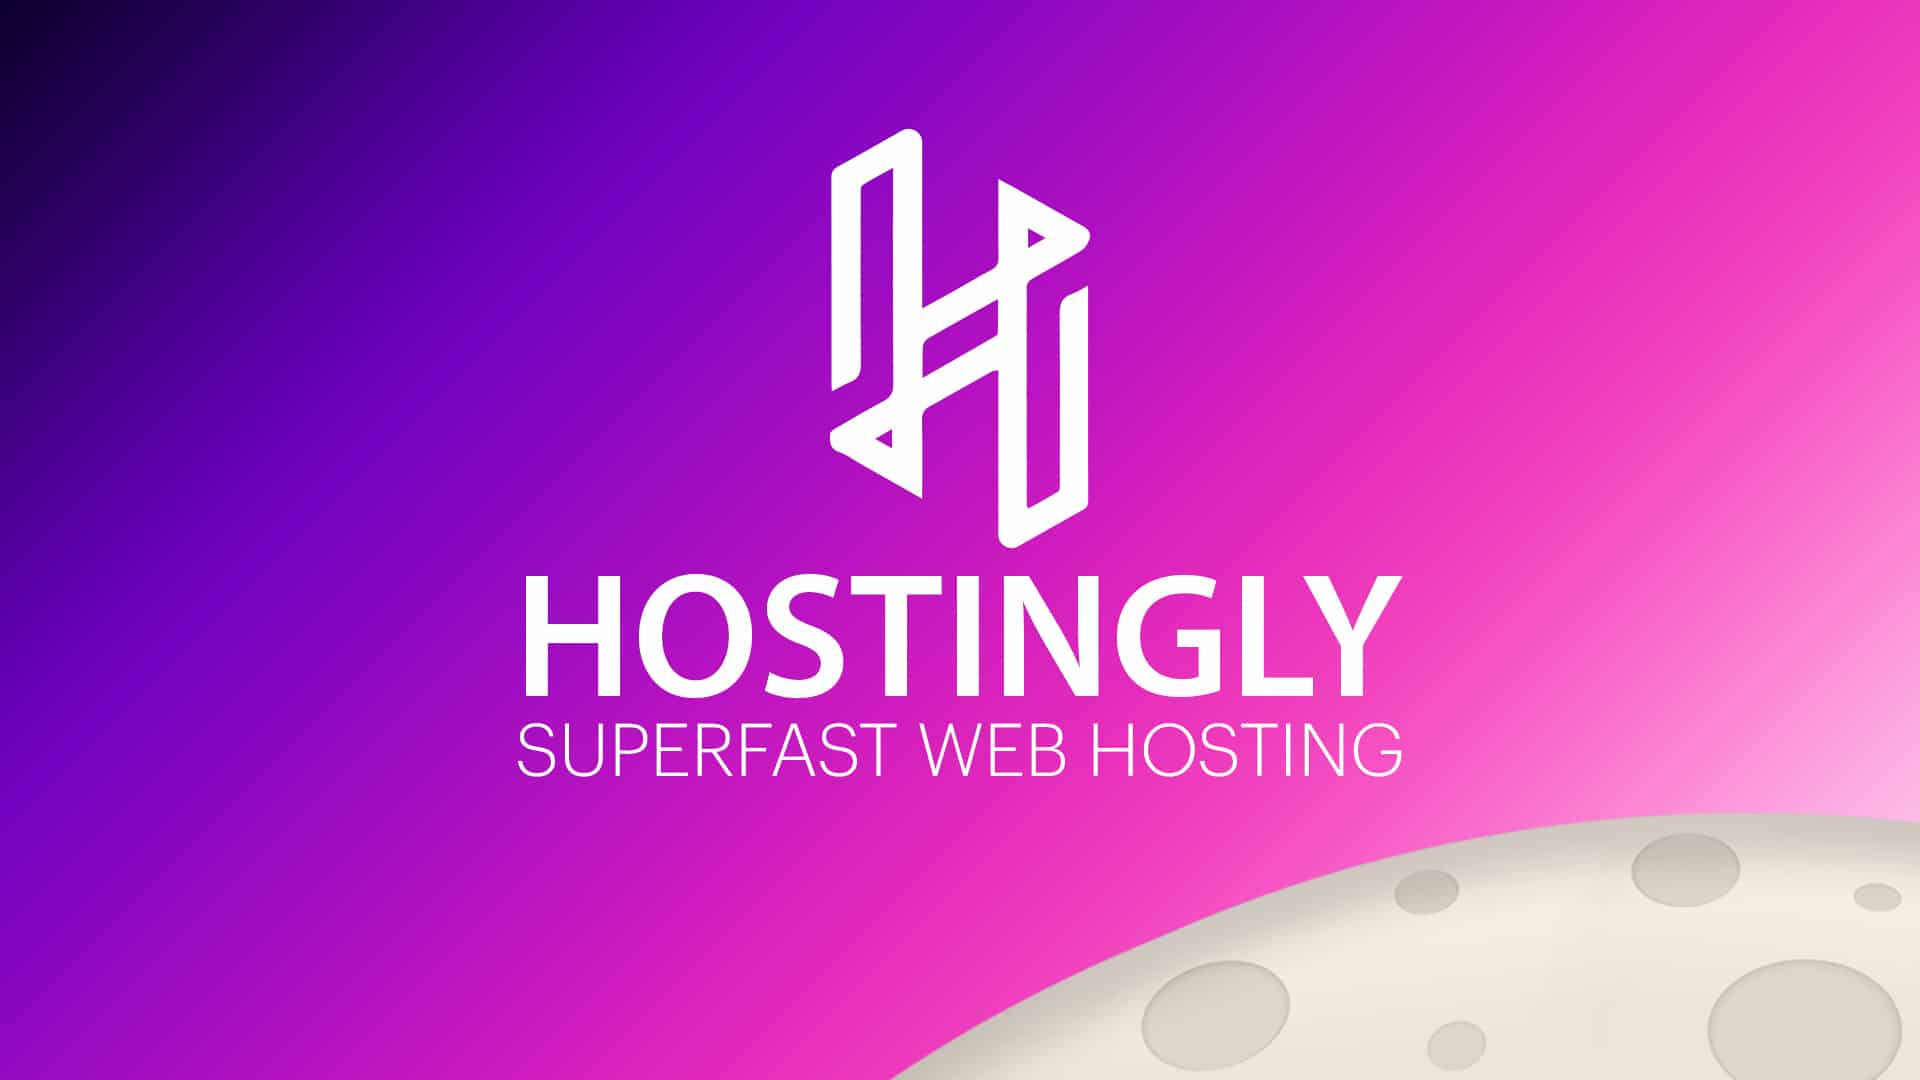 Best Web Hosting Packages With Cpanel Management - Hostingly